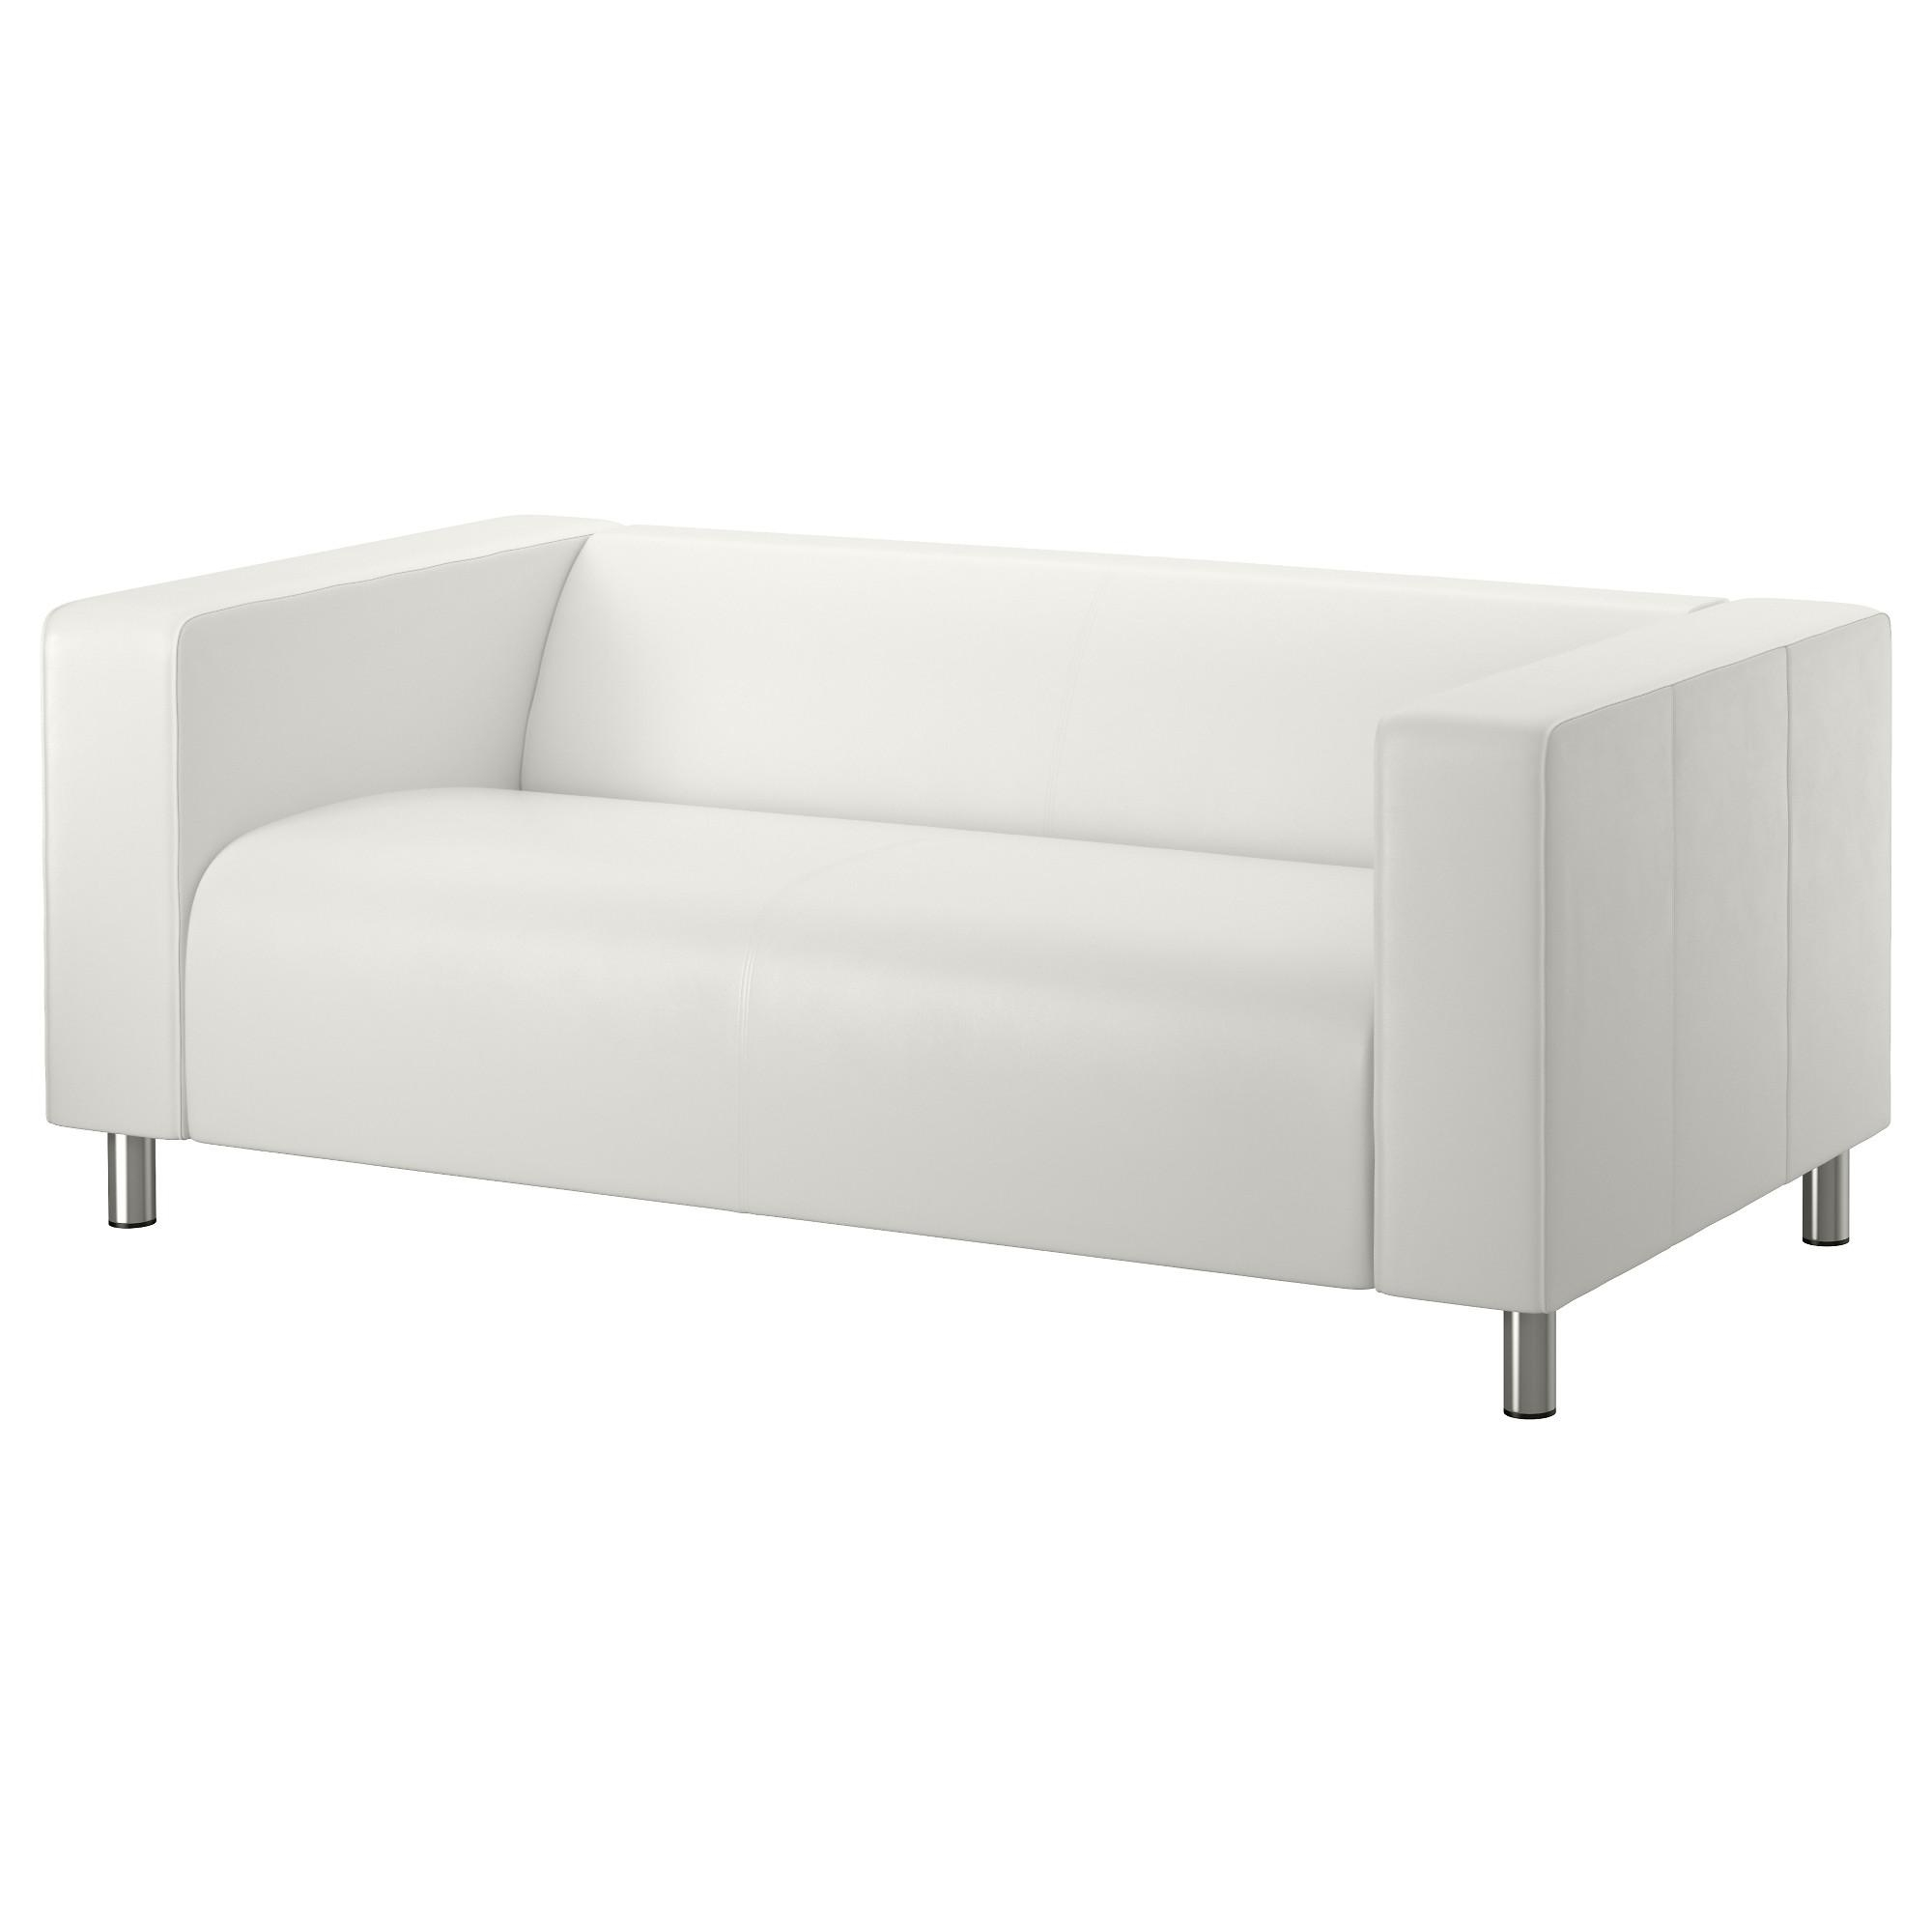 Leather & Faux Leather Couches, Chairs & Ottomans – Ikea Regarding White Sofa Chairs (Image 6 of 20)